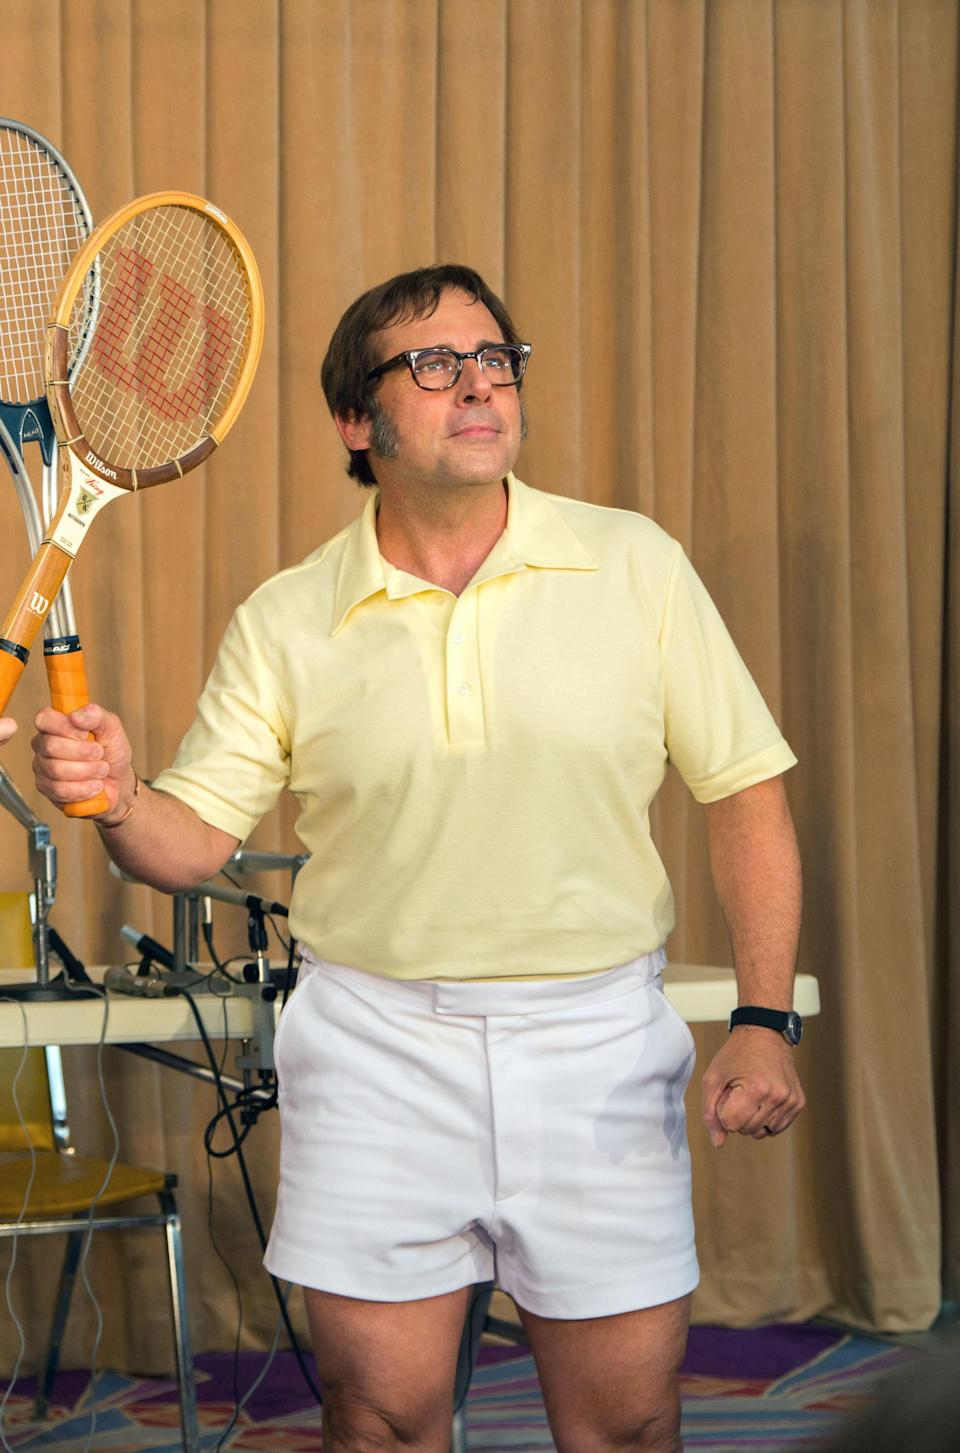 Bobby Riggs posing with his tennis racket in the air